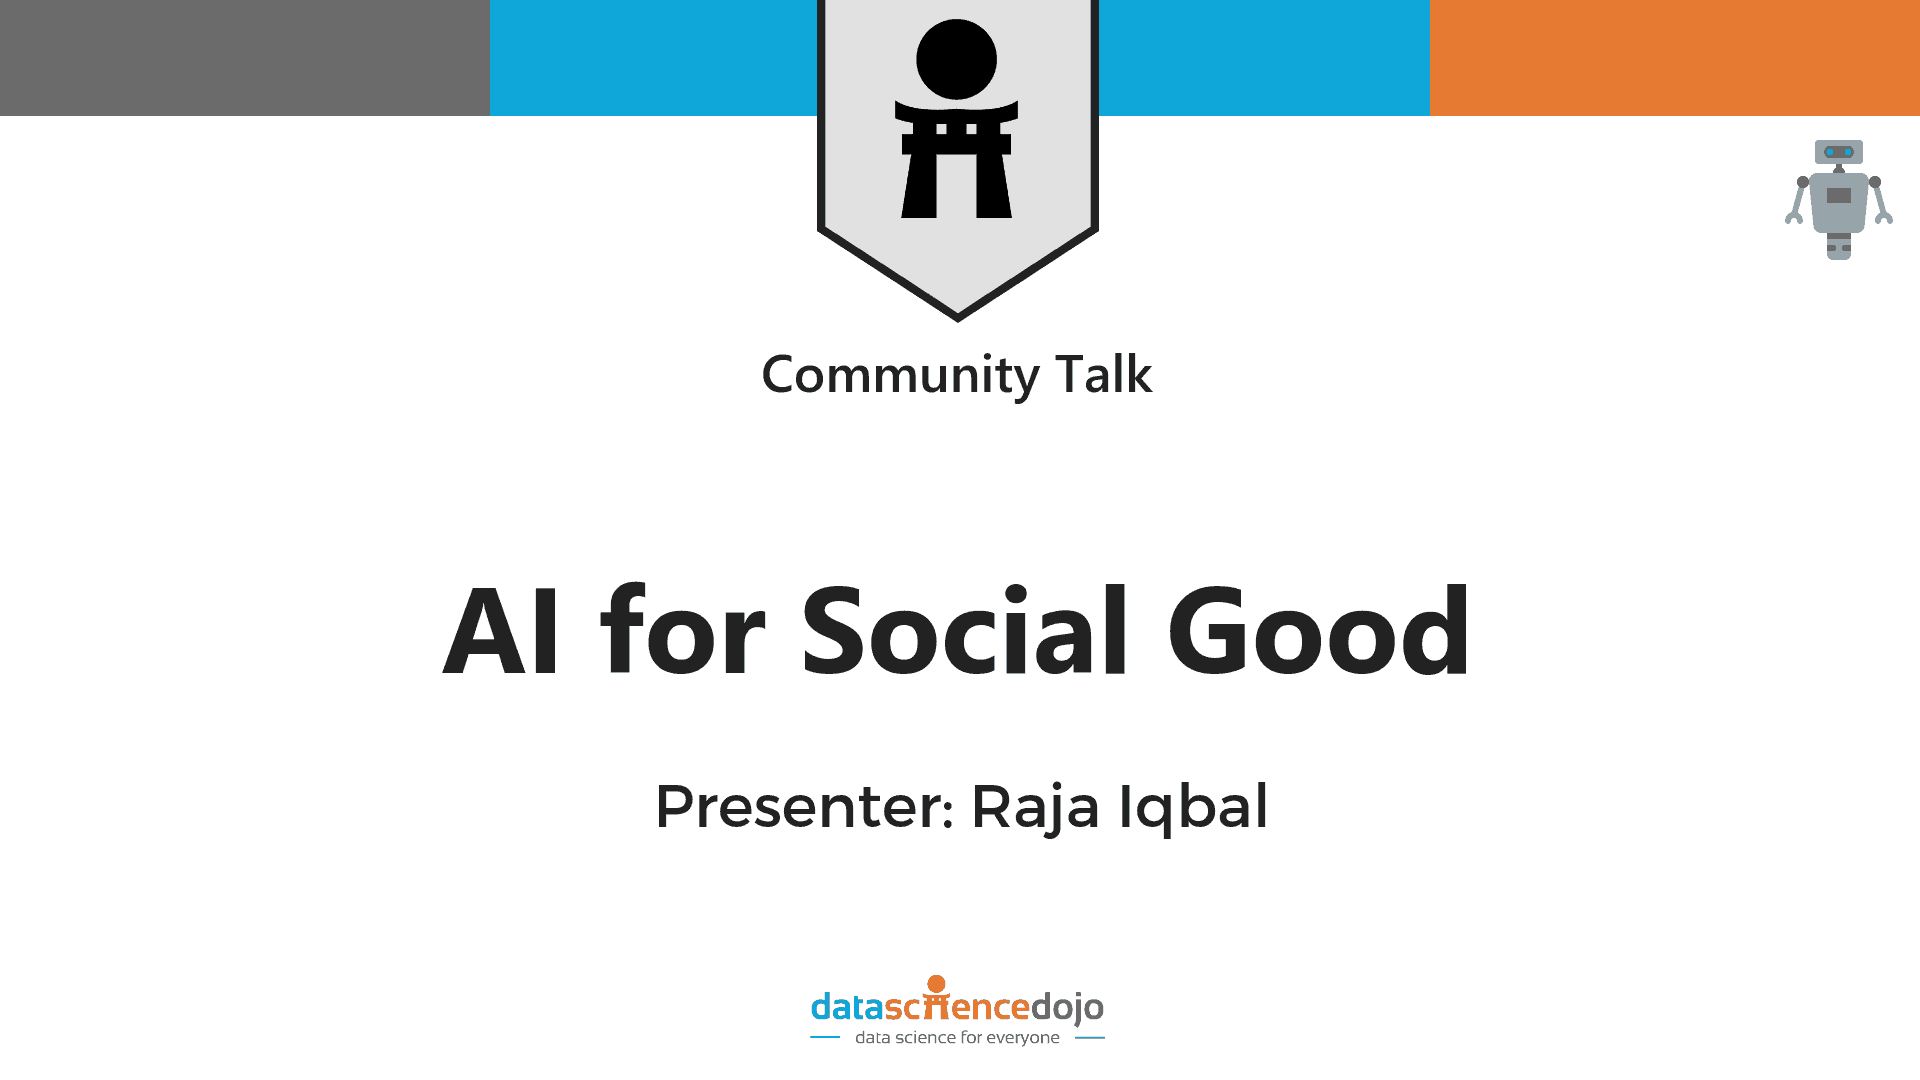 AI for Social Good